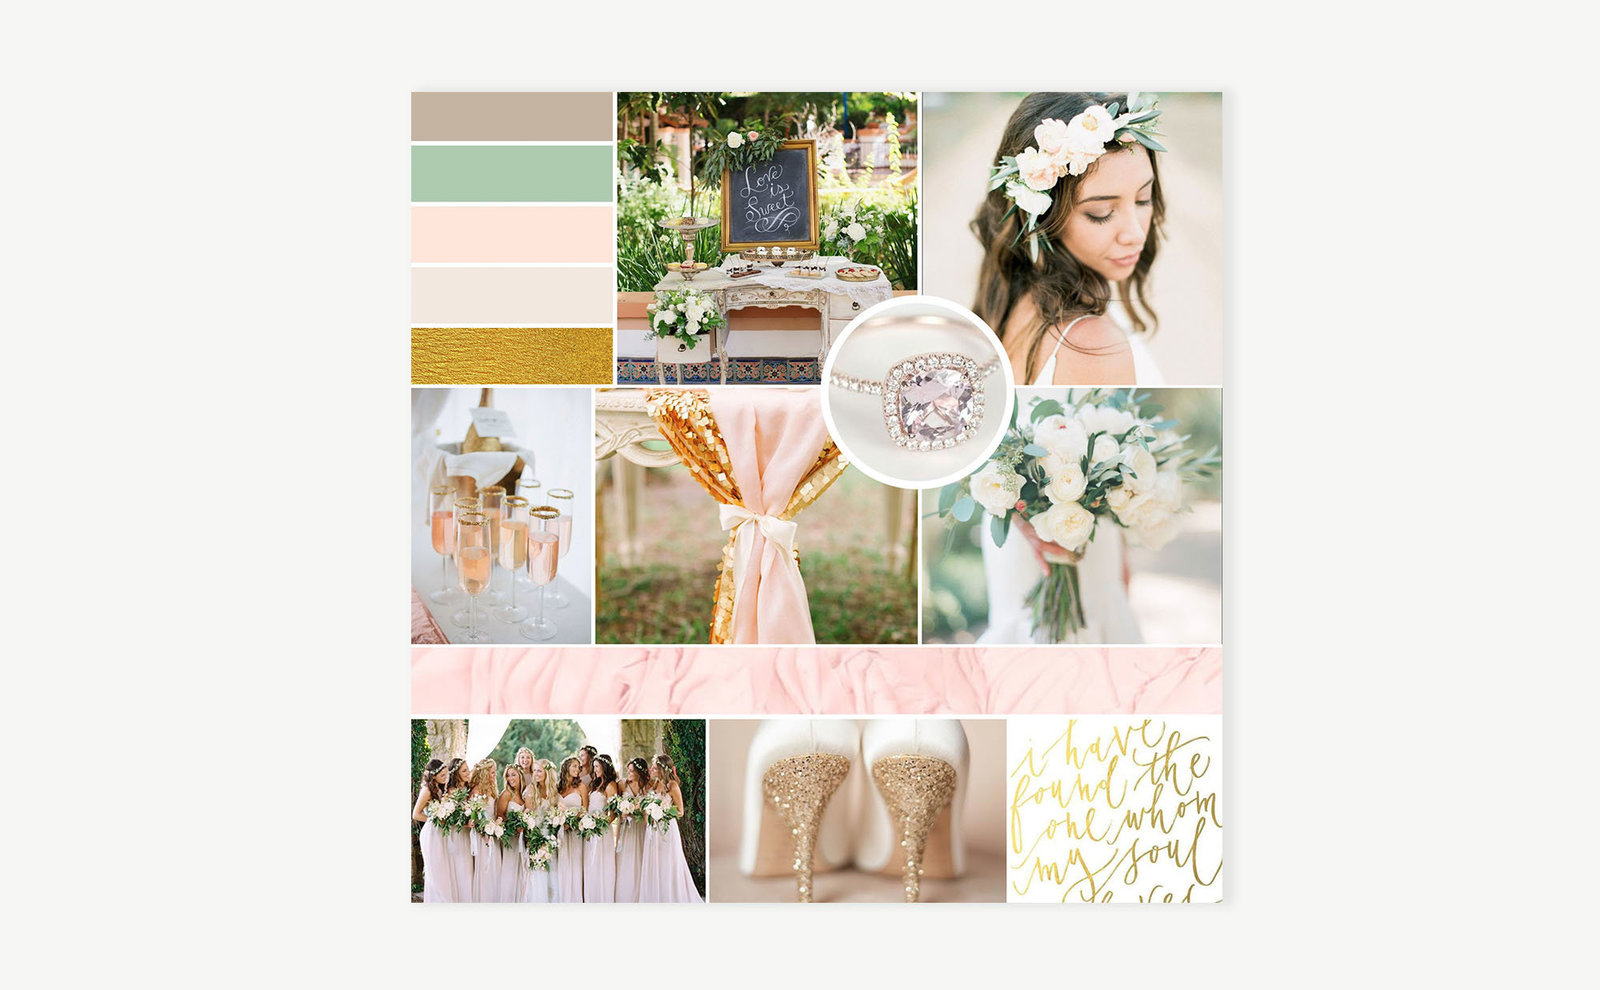 wedding-branding-mood-board-courtney-inghram-shoot